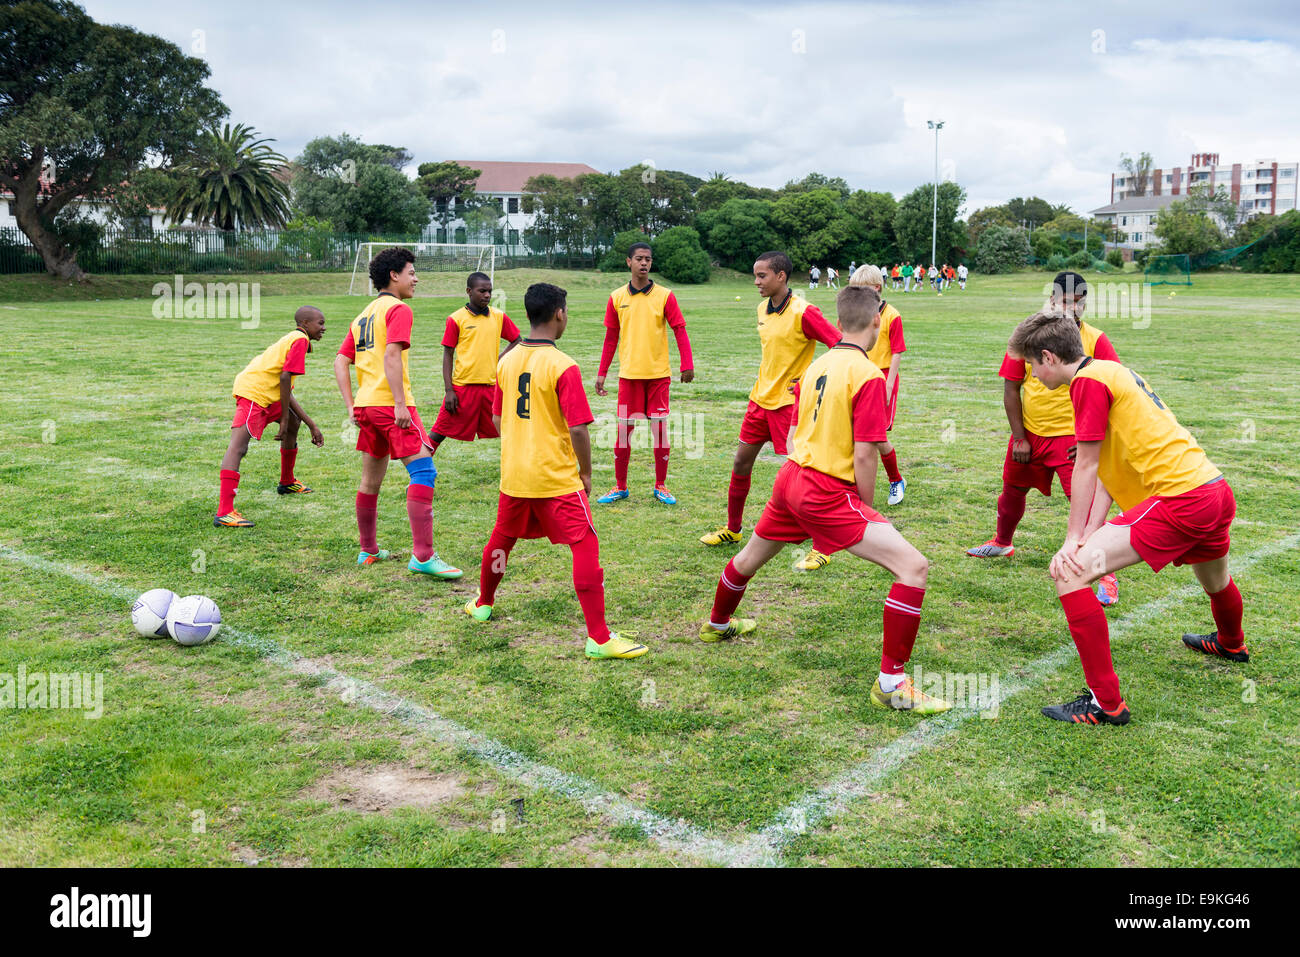 Youth football team stretching as part of their warm-up exercise, Cape Town, South Africa - Stock Image